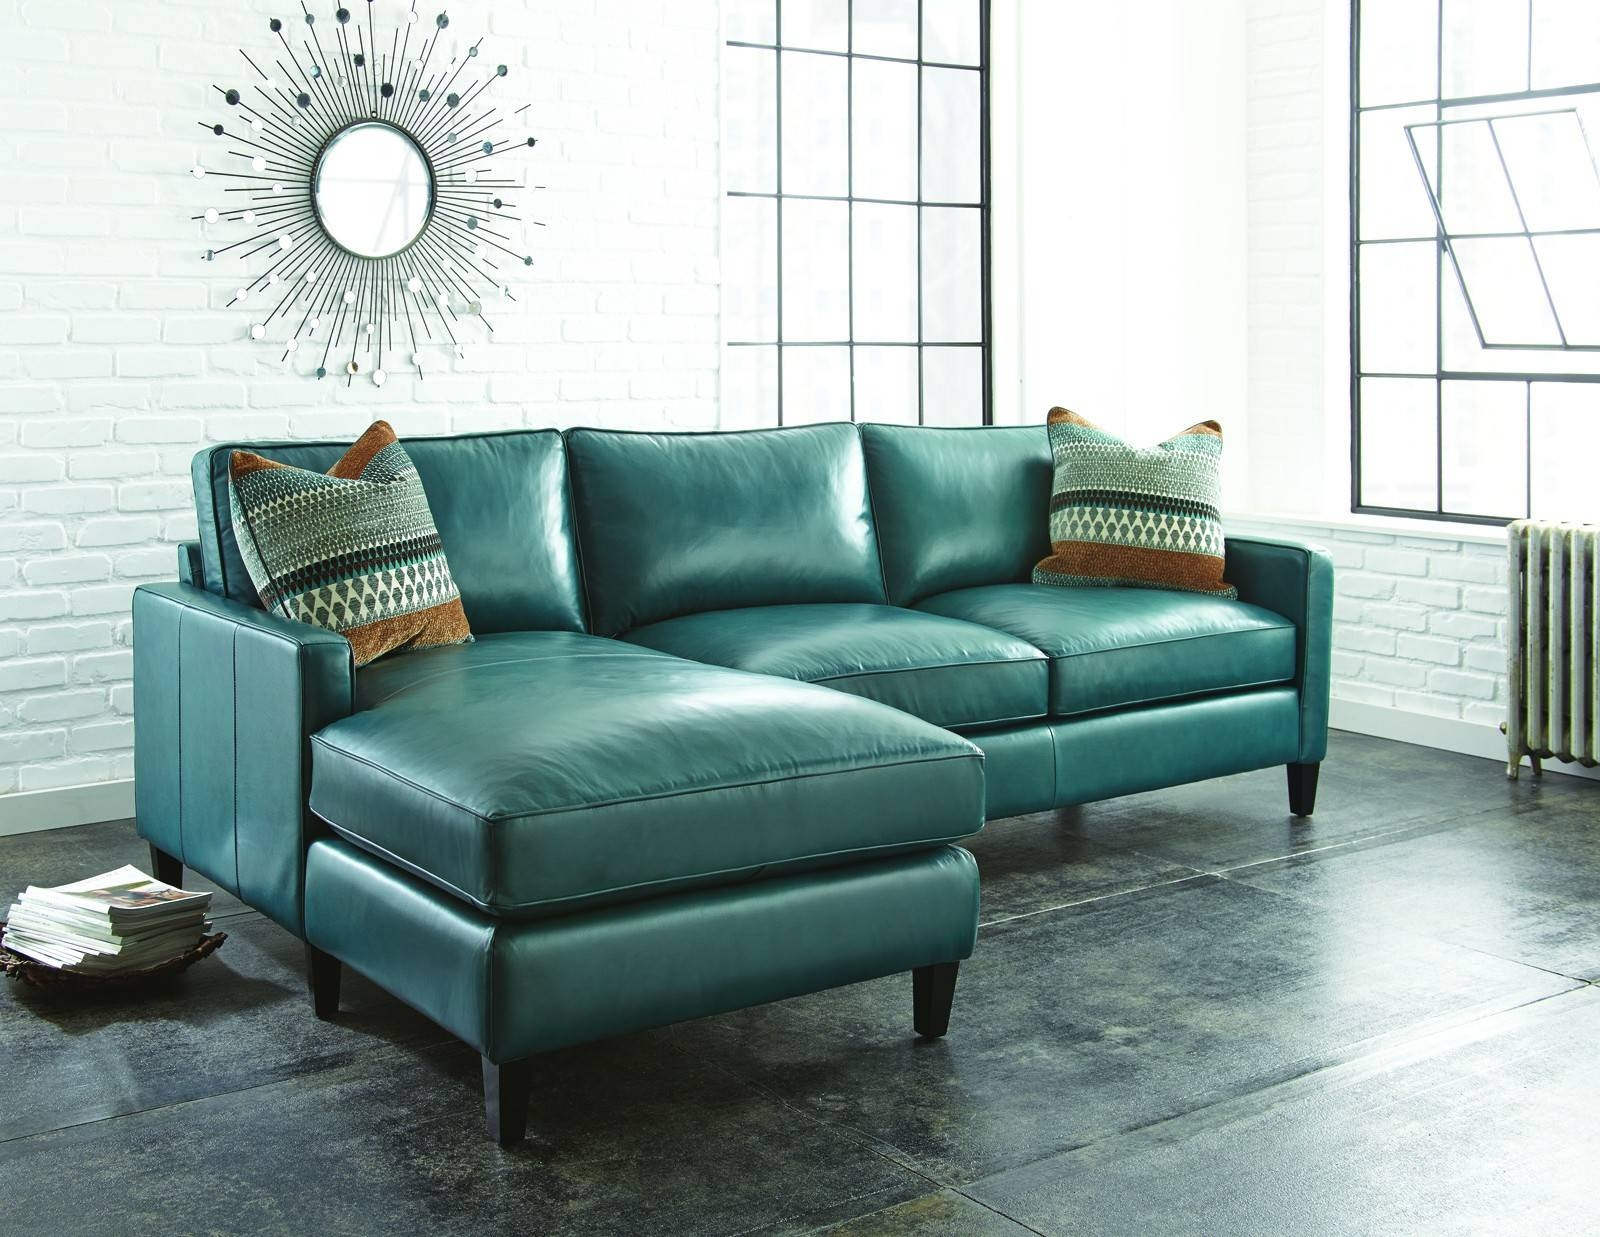 Sofa: Turquoise Sofa For Luxury Mid Century Sofas Design Ideas intended for Sky Blue Sofas (Image 14 of 15)